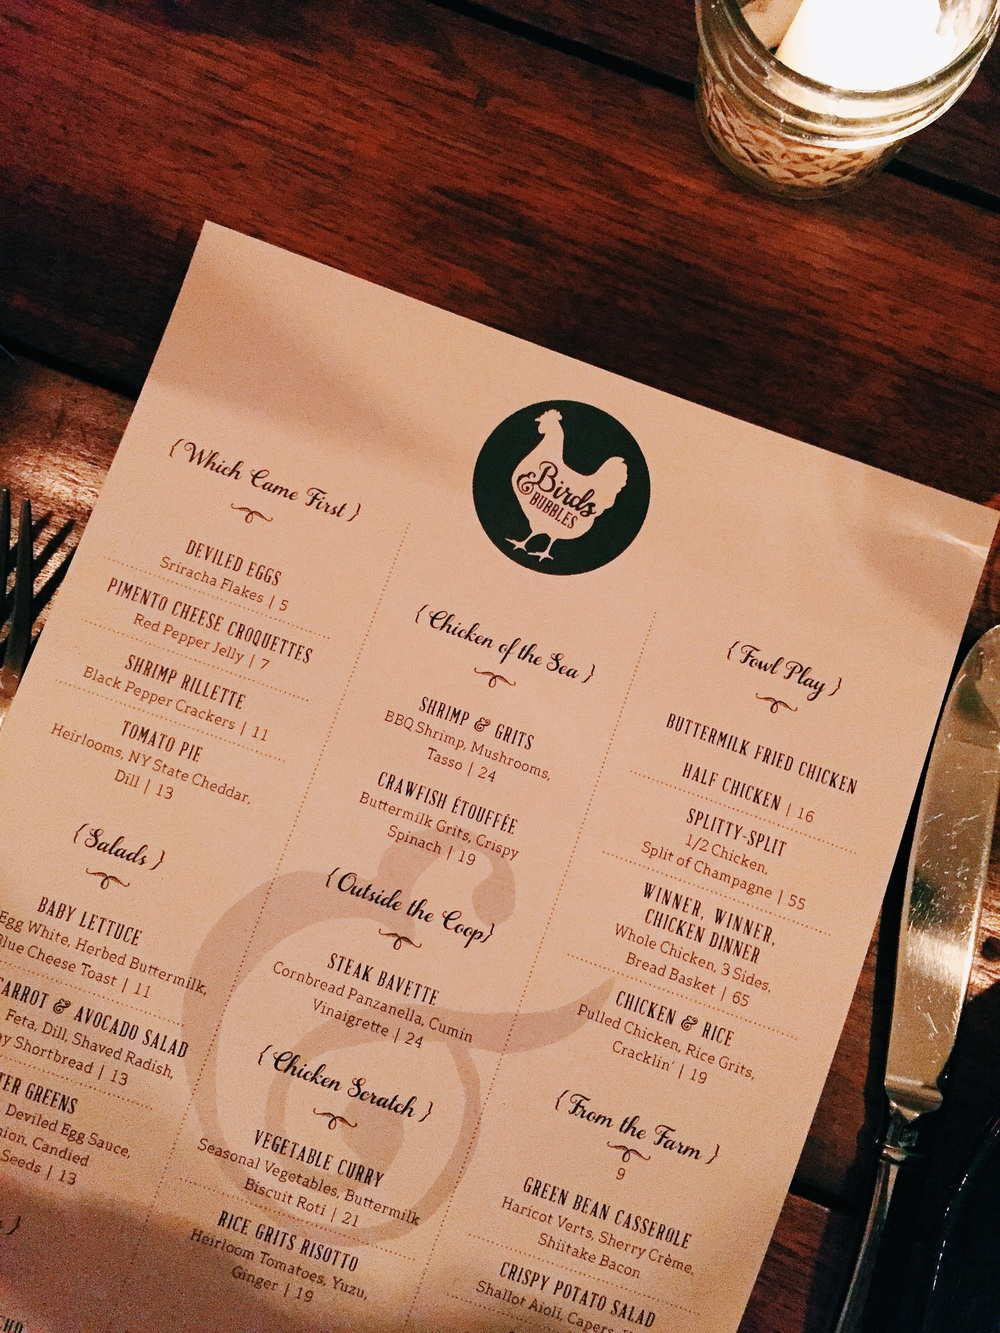 A peek at the food menu